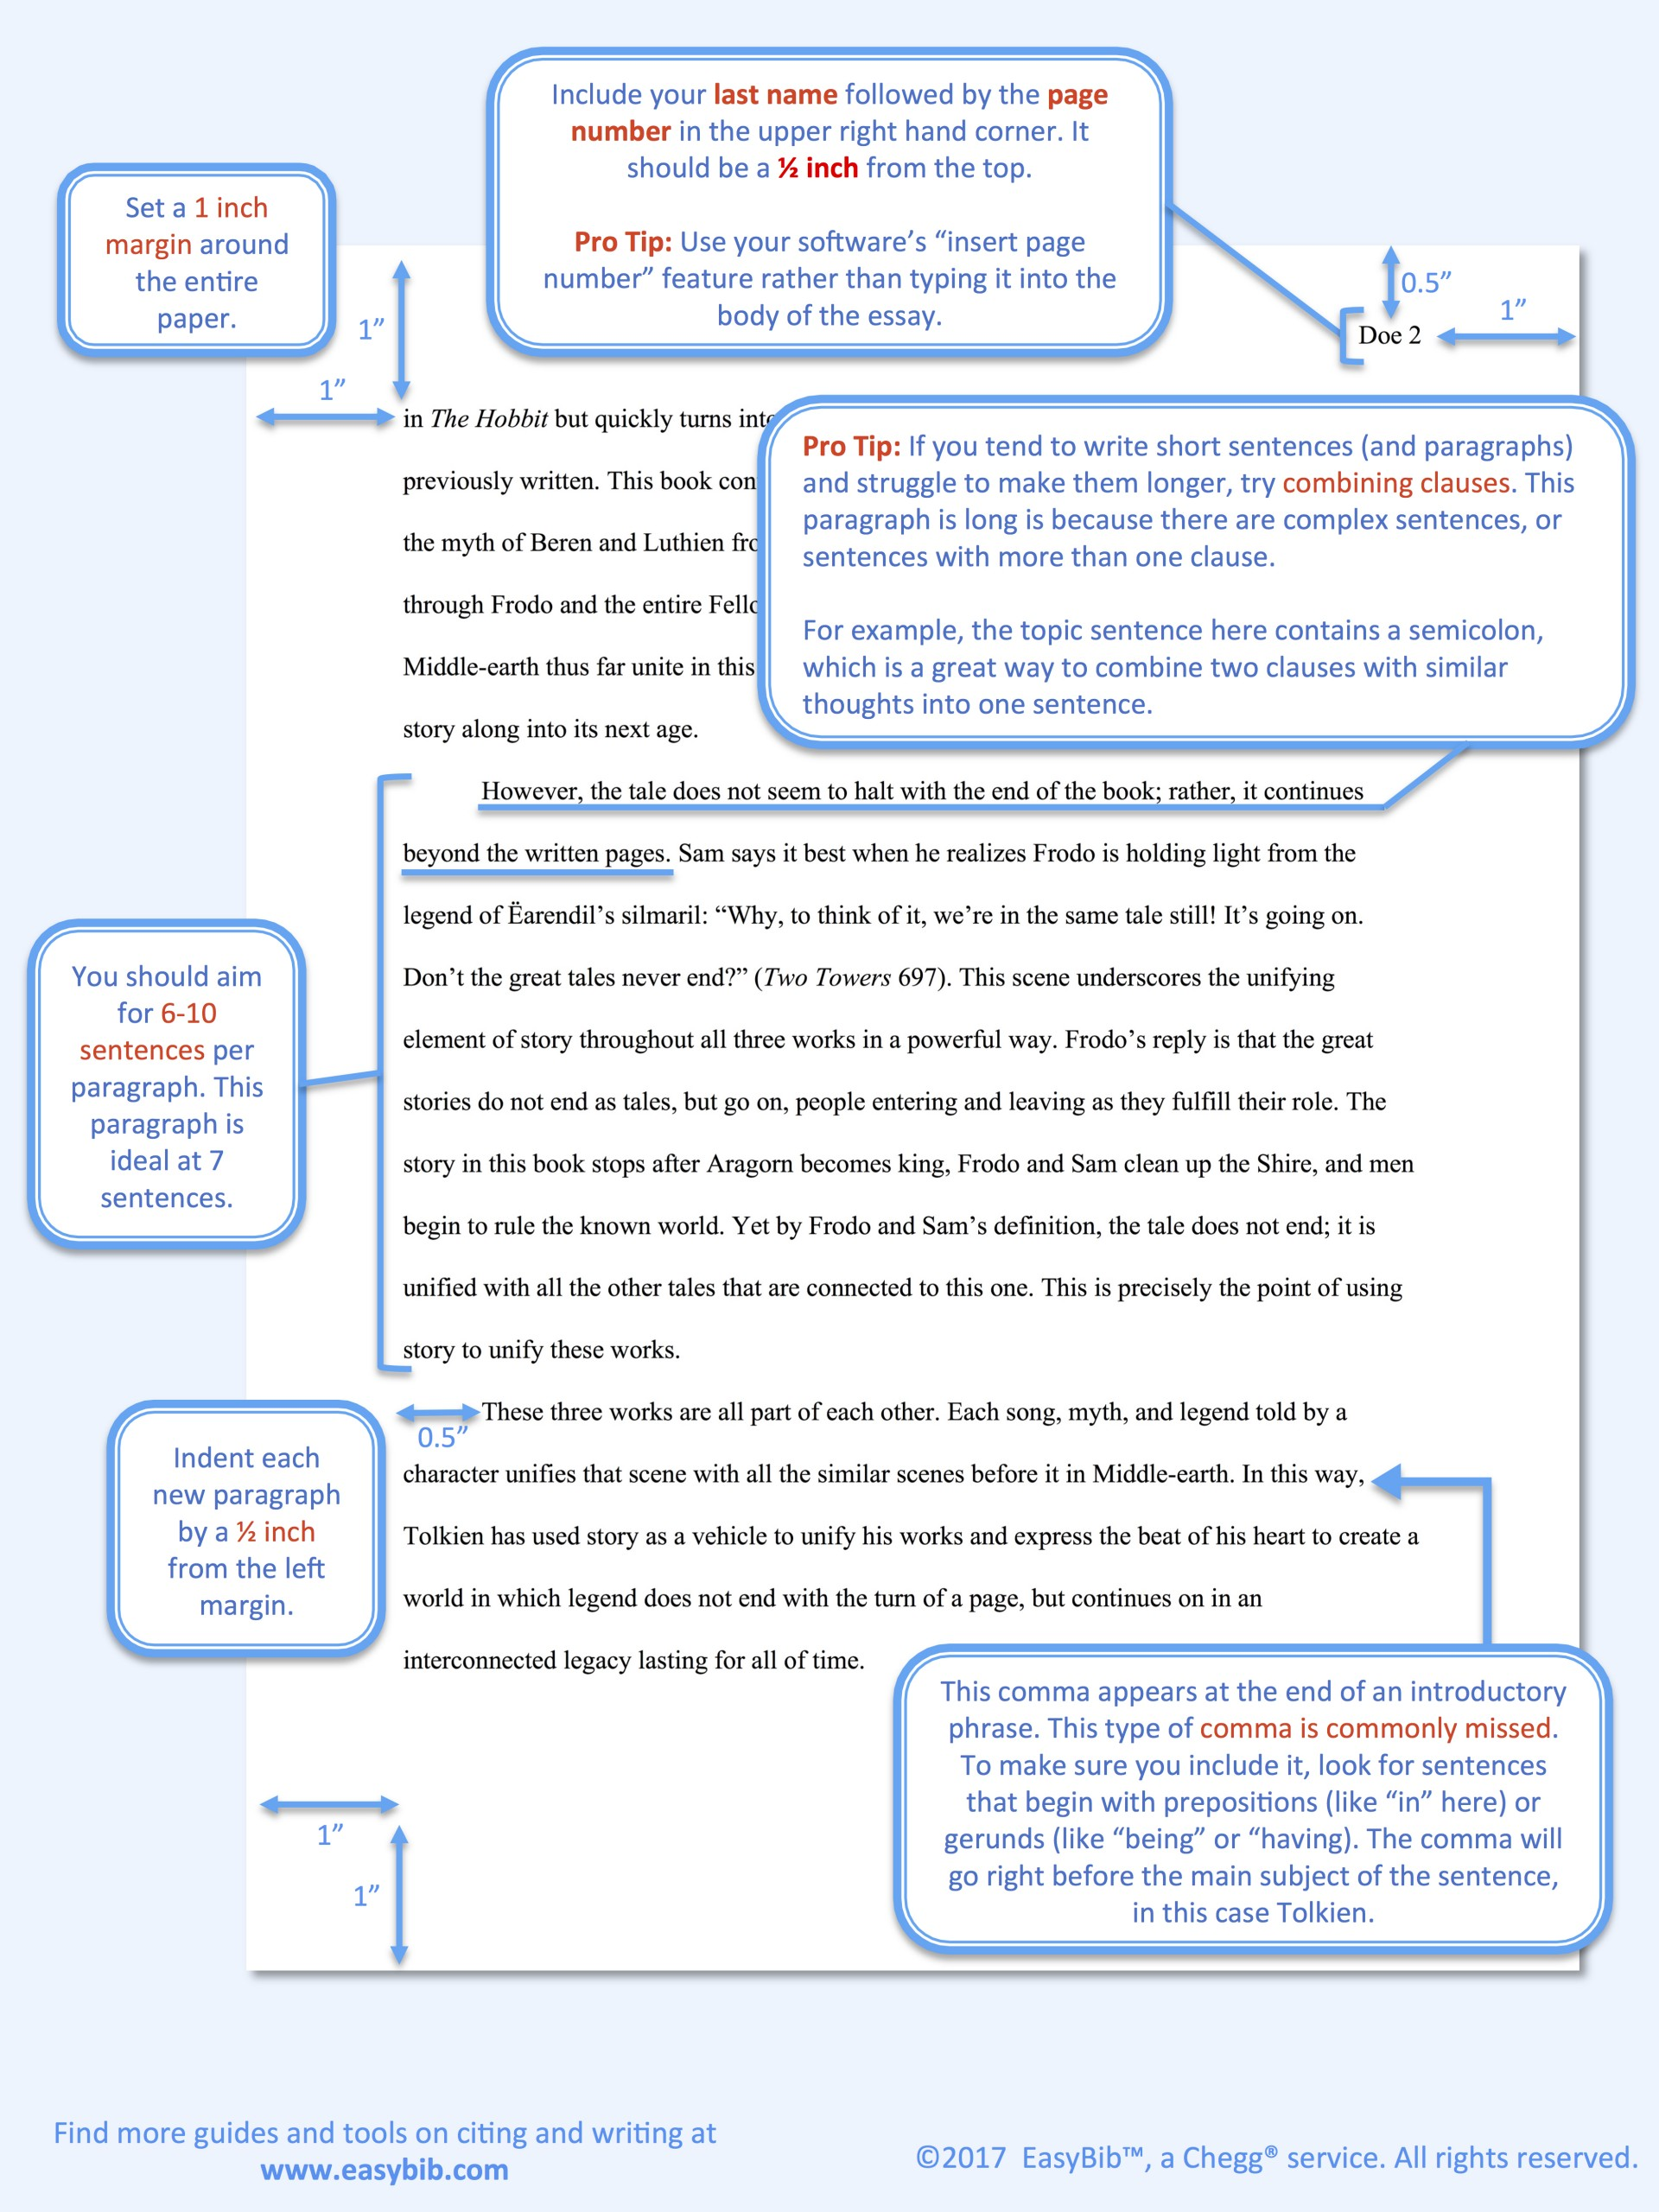 003 Citation Rules For Research Papers Model Mla Paper Awful 1920